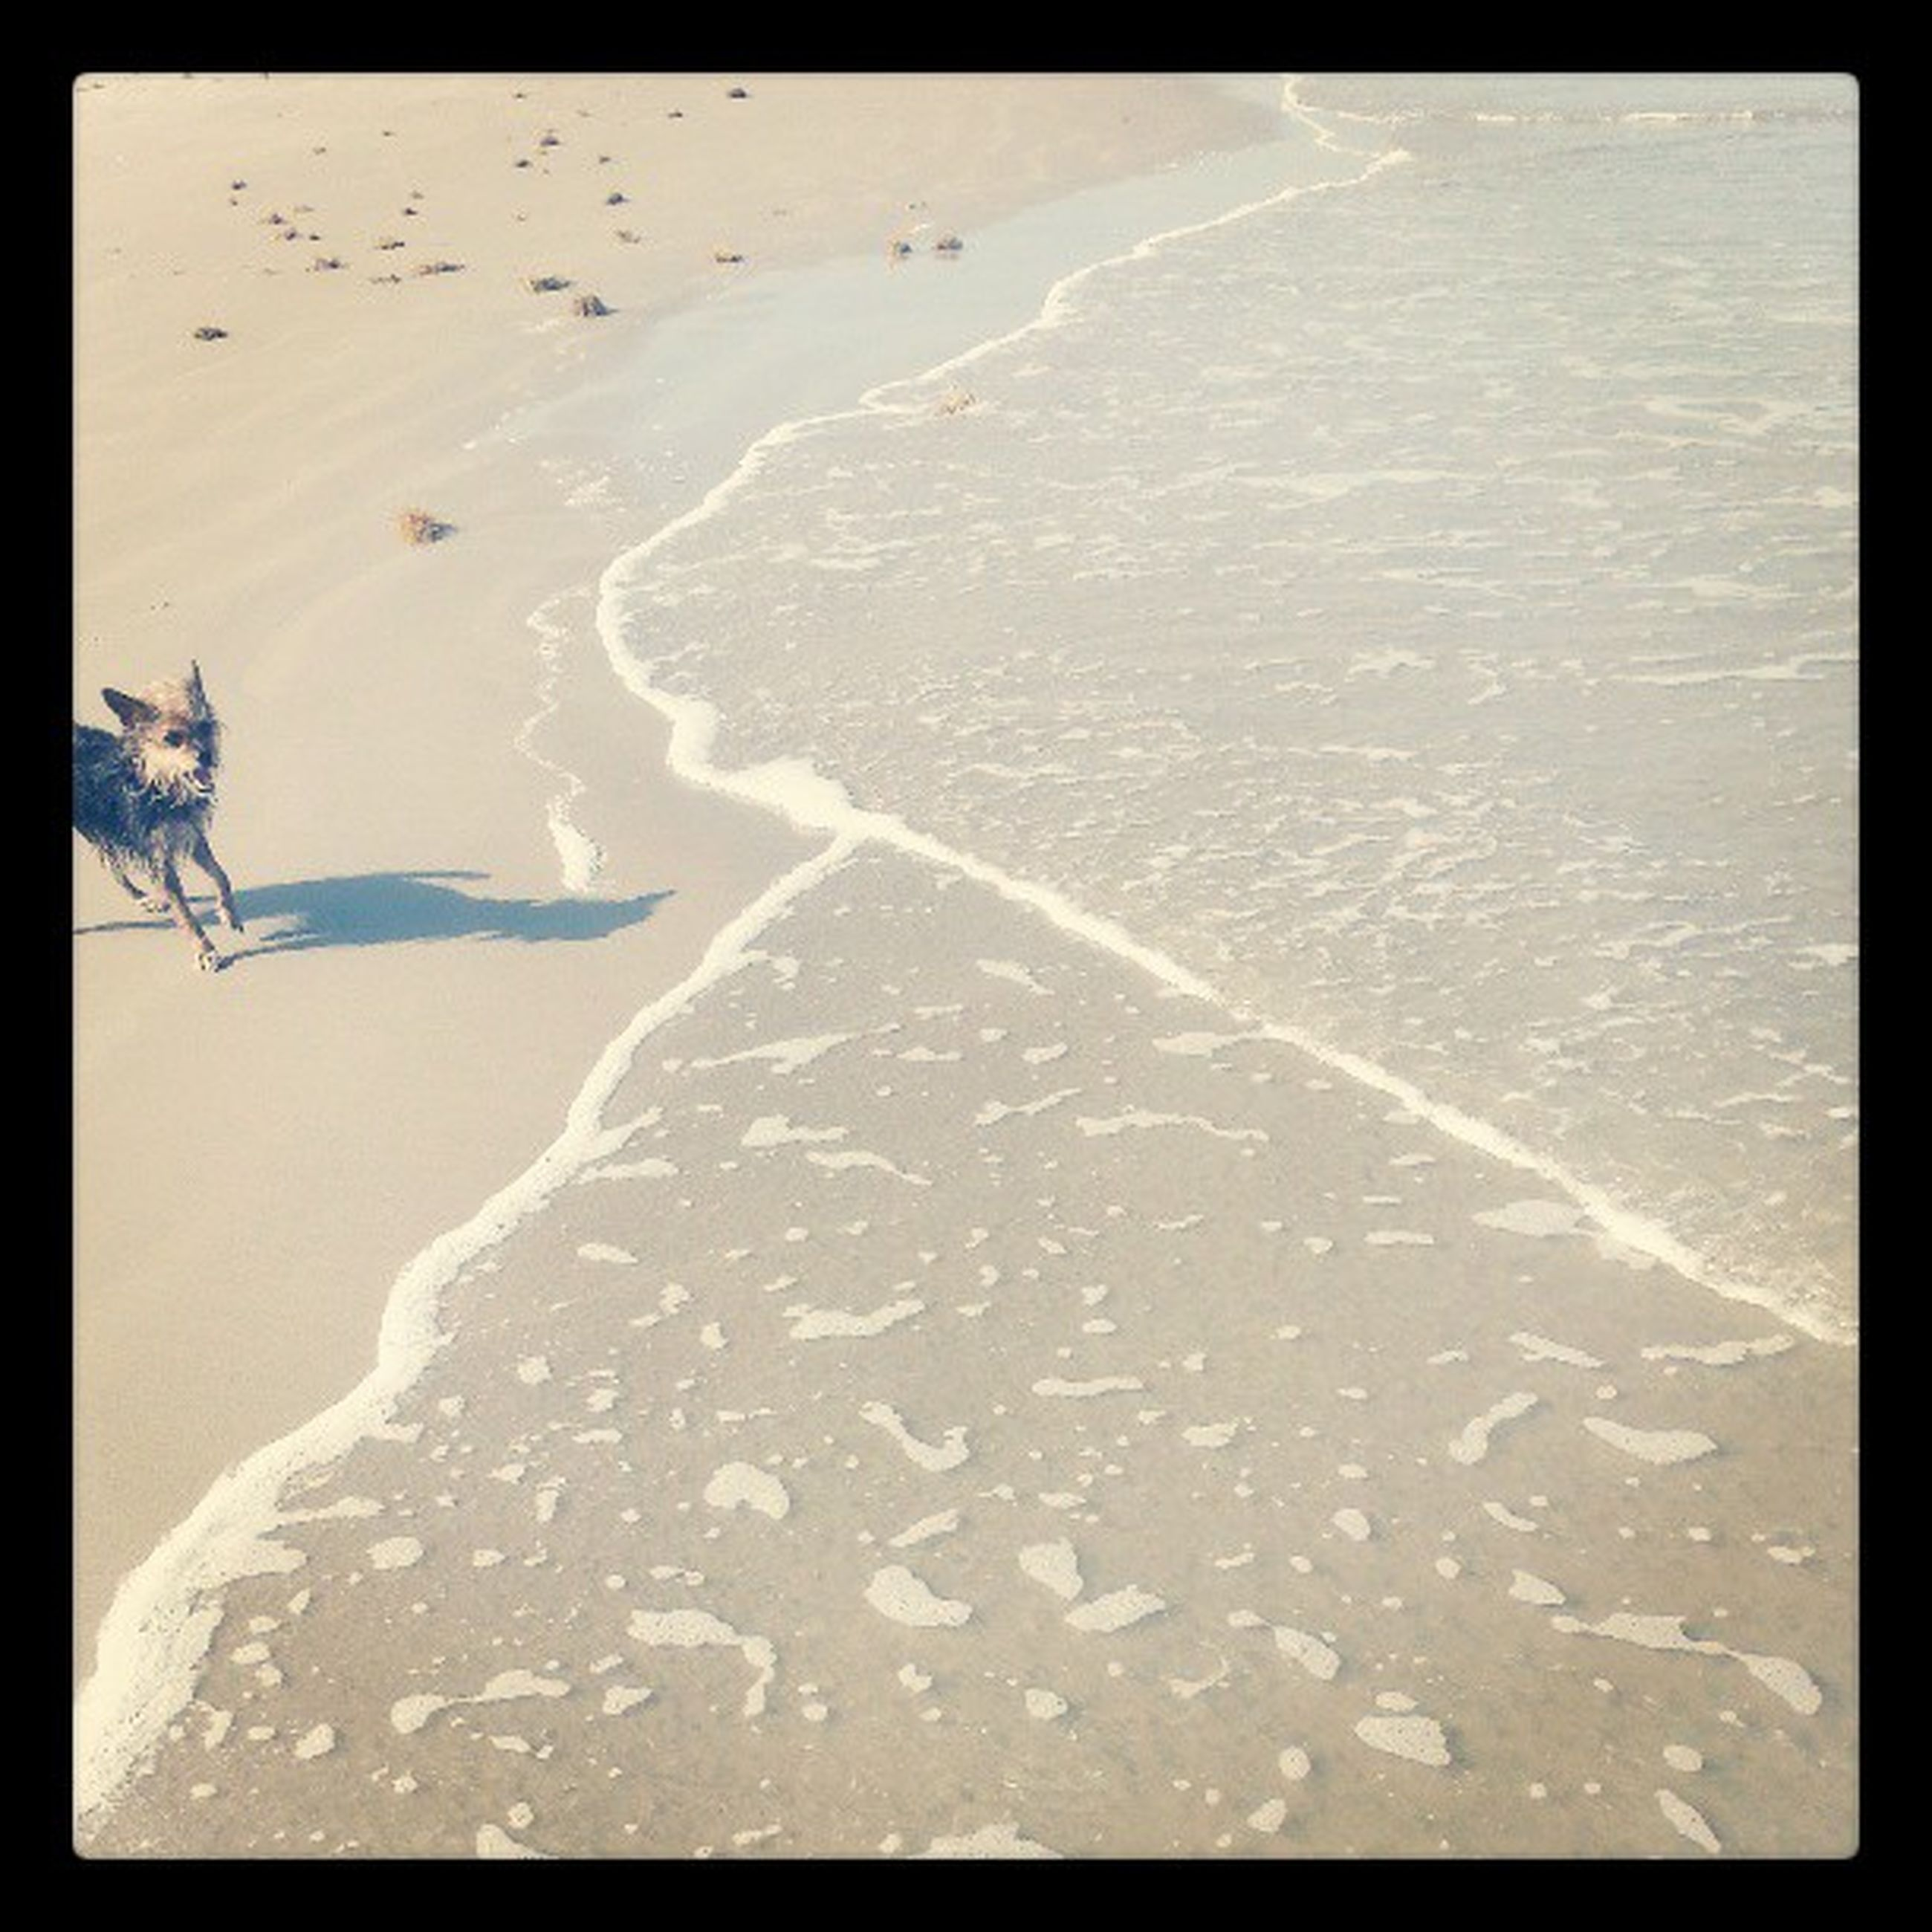 transfer print, auto post production filter, sand, tranquility, snow, nature, cold temperature, footprint, winter, beauty in nature, beach, tranquil scene, water, scenics, high angle view, season, day, landscape, outdoors, weather